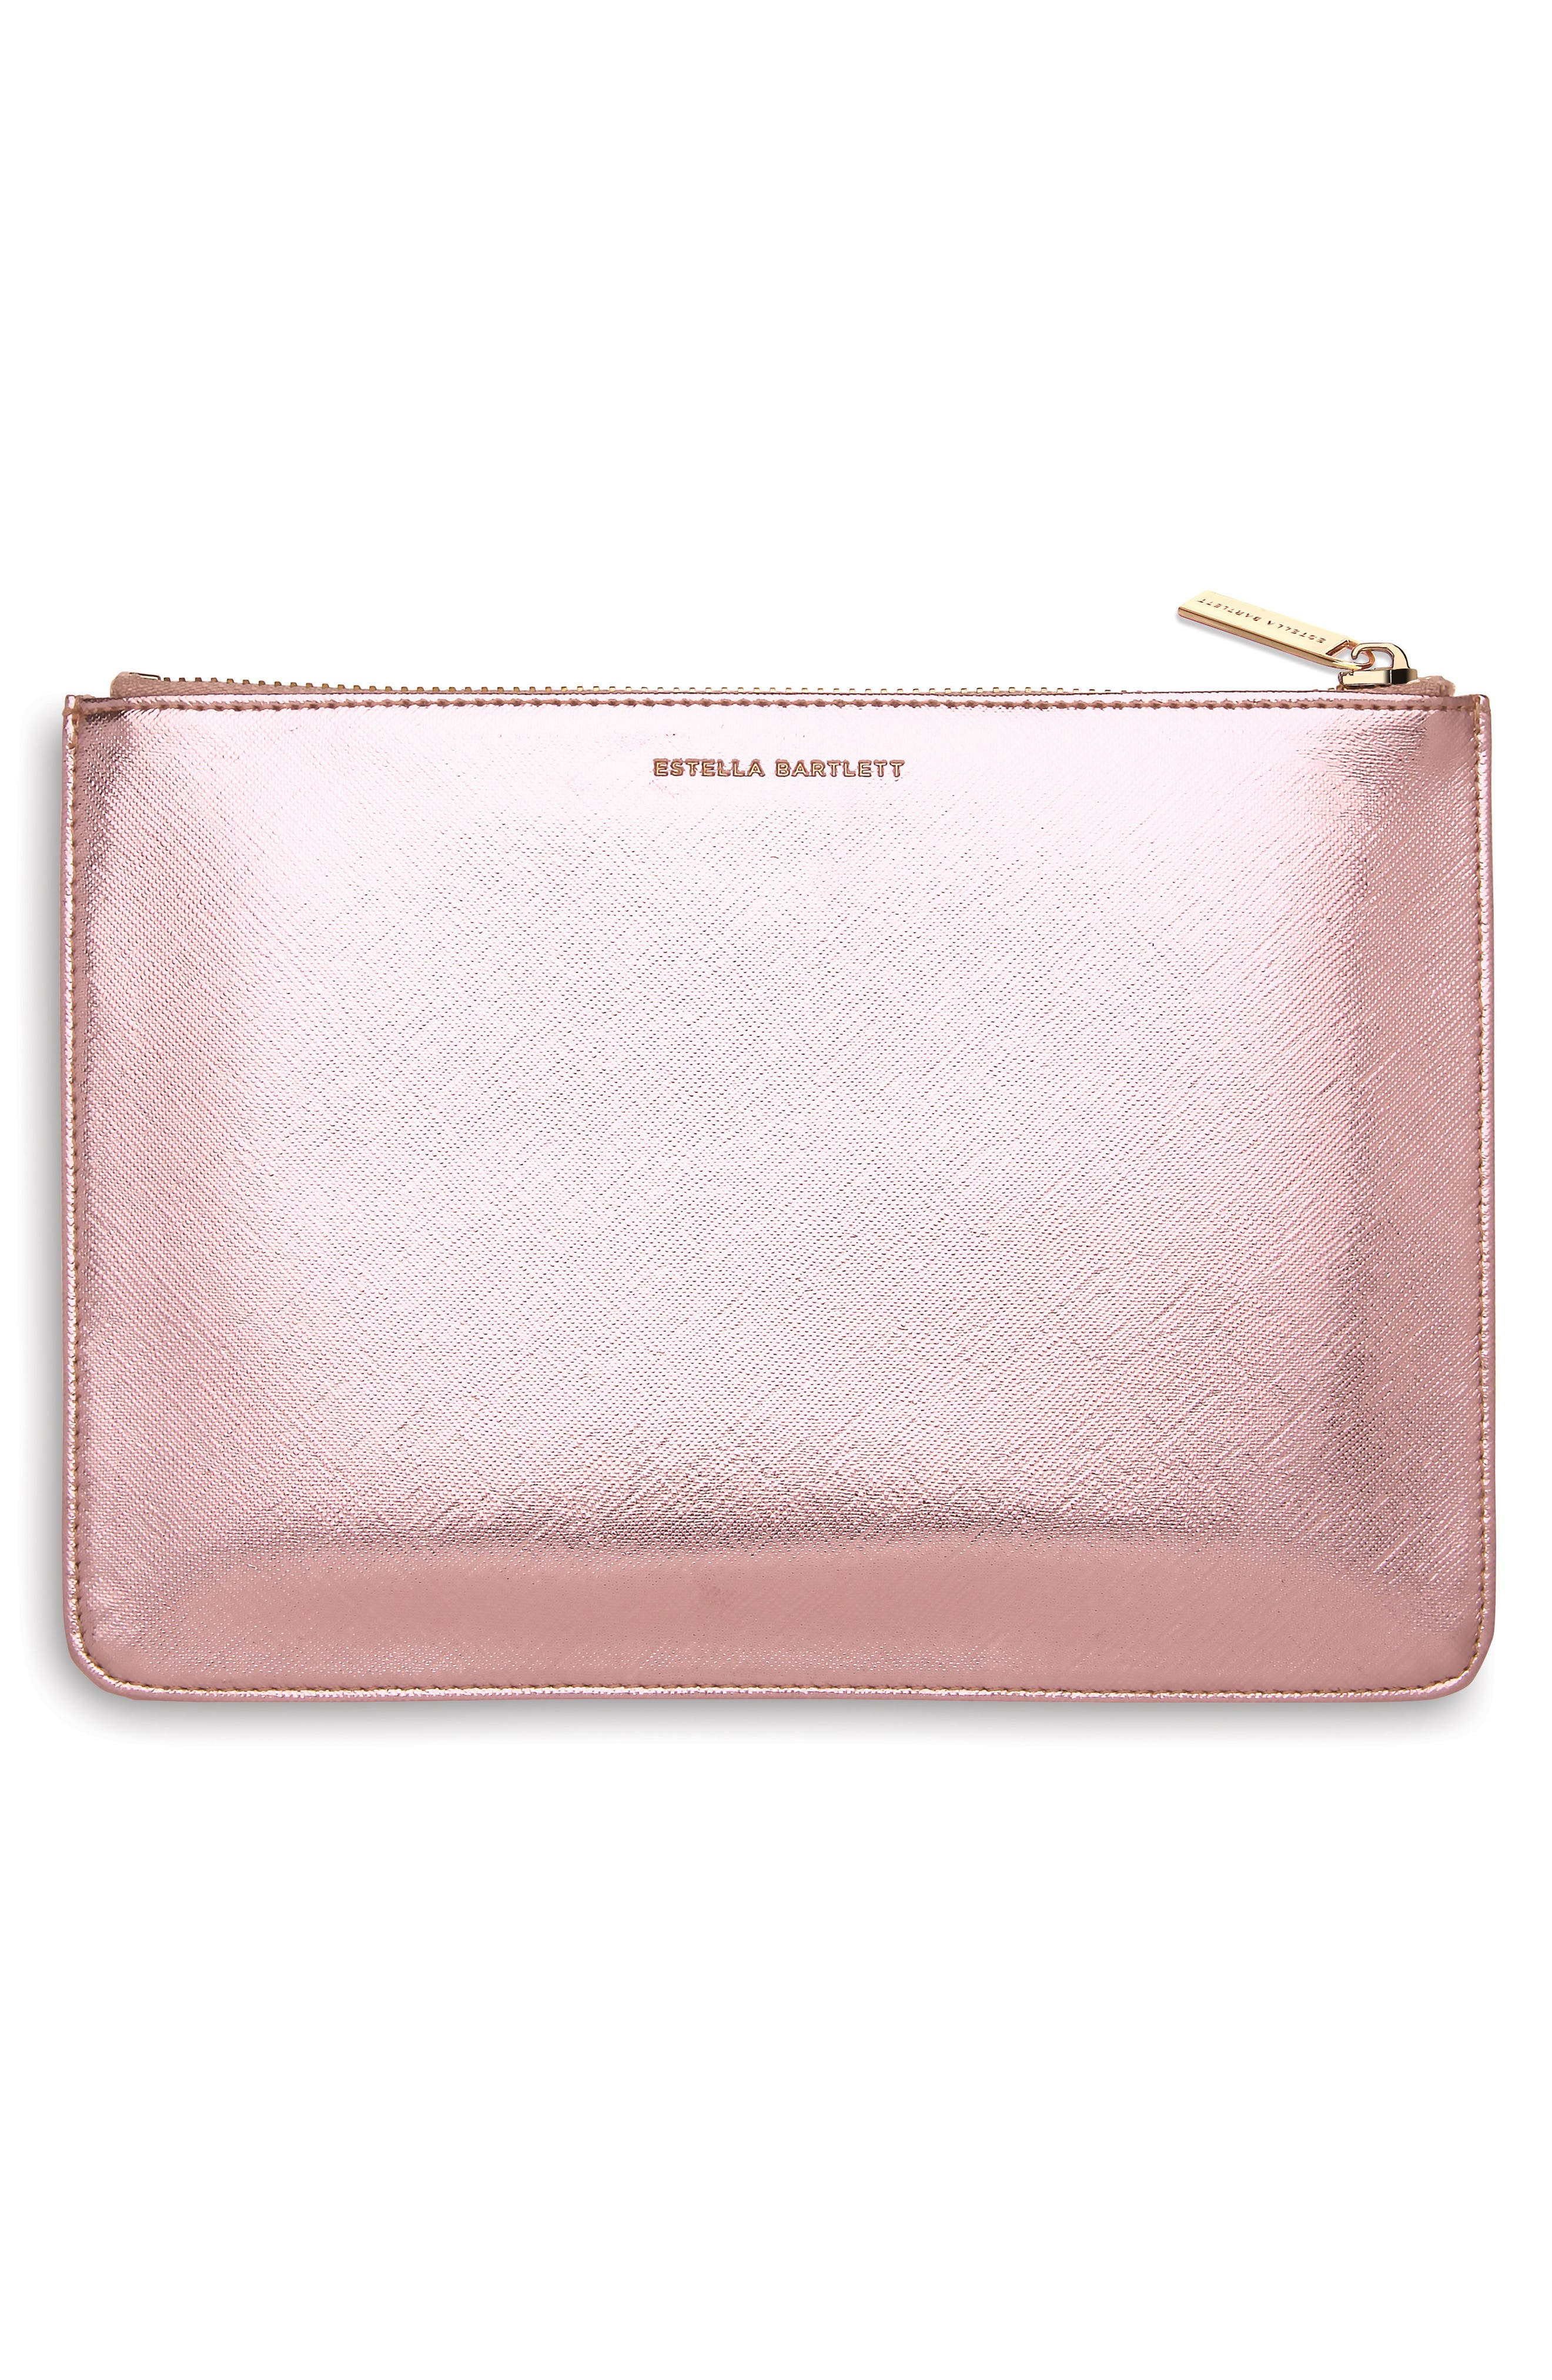 Just Imagine Faux Leather Pouch,                             Alternate thumbnail 2, color,                             Rose Gold